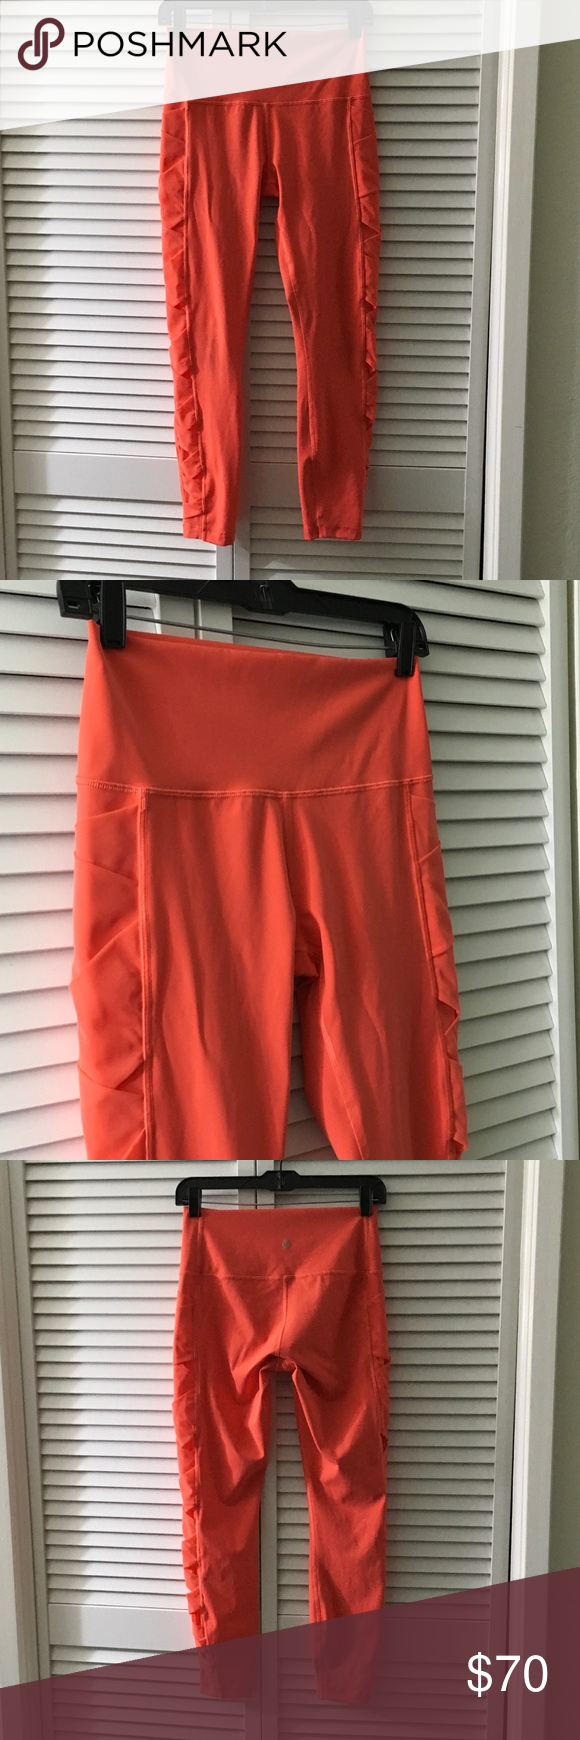 "Lululemon Rise and Flow Pant Good Condition, size 8, Luxtreme with cute mesh details along the sides, Inseam is 25"", Rise is 9"", there is a slight darkness on both knees (see last photo) lululemon athletica Pants Leggings"